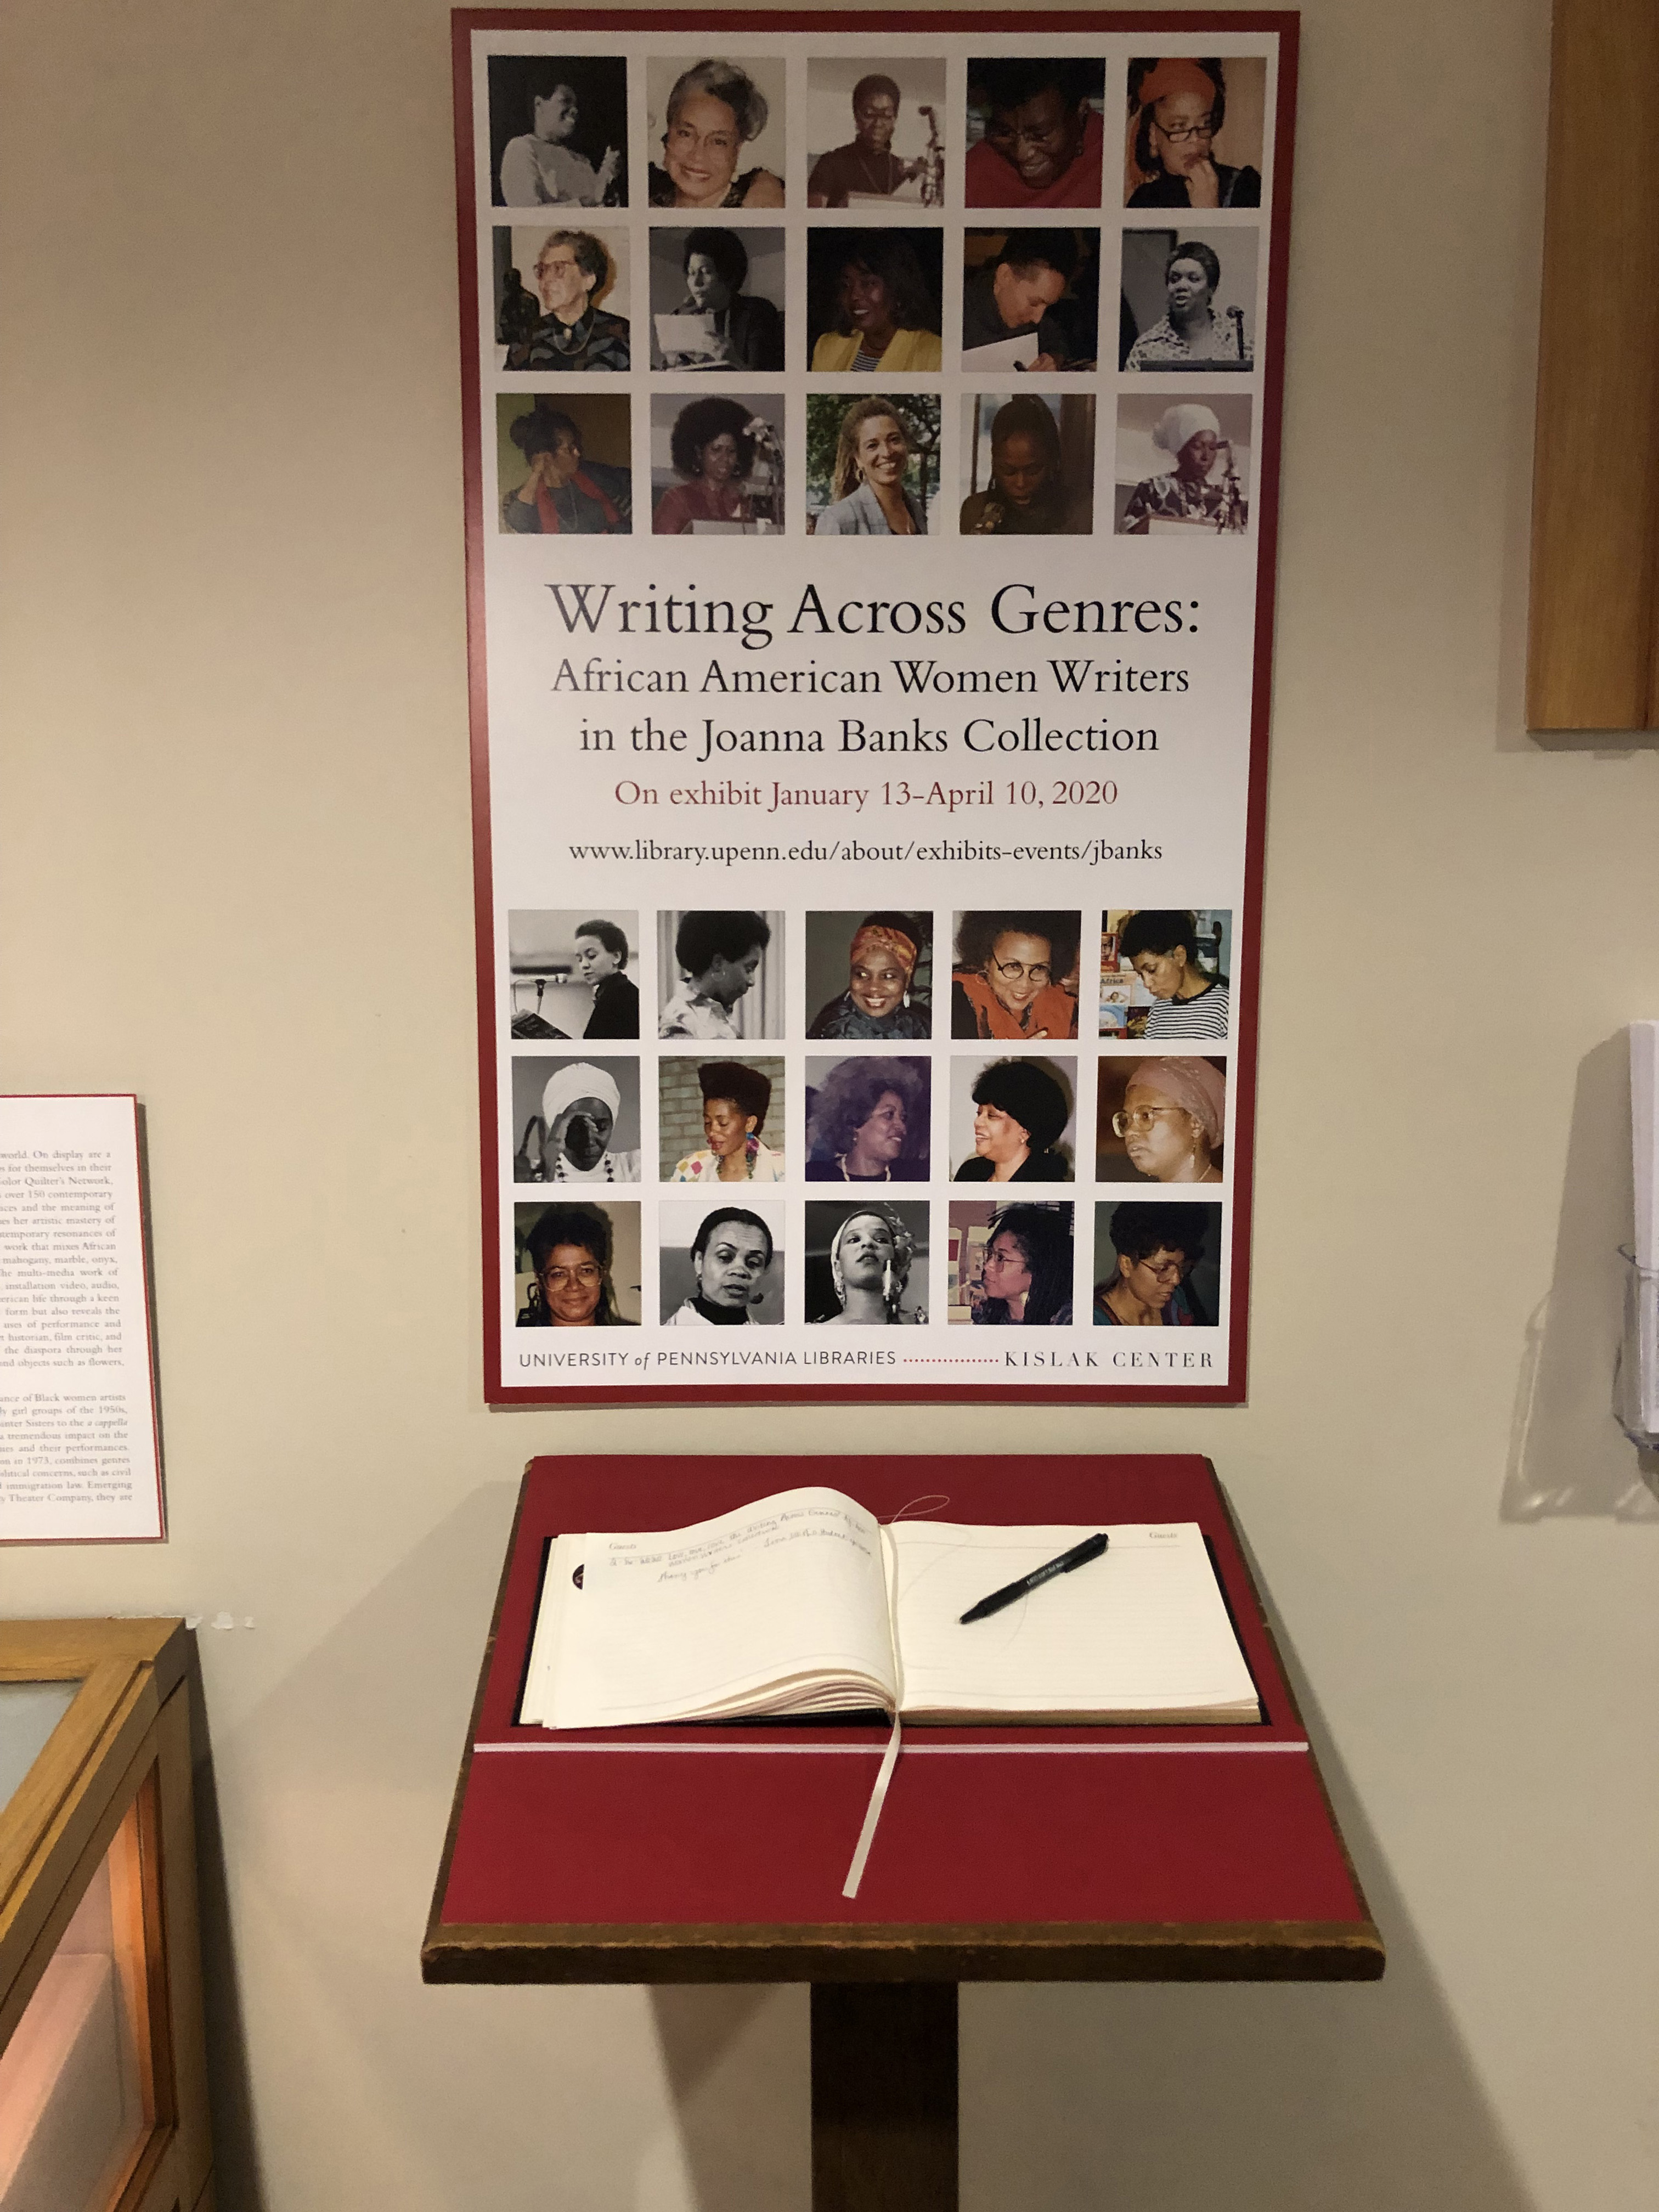 Writing Across Genres poster and guestbook